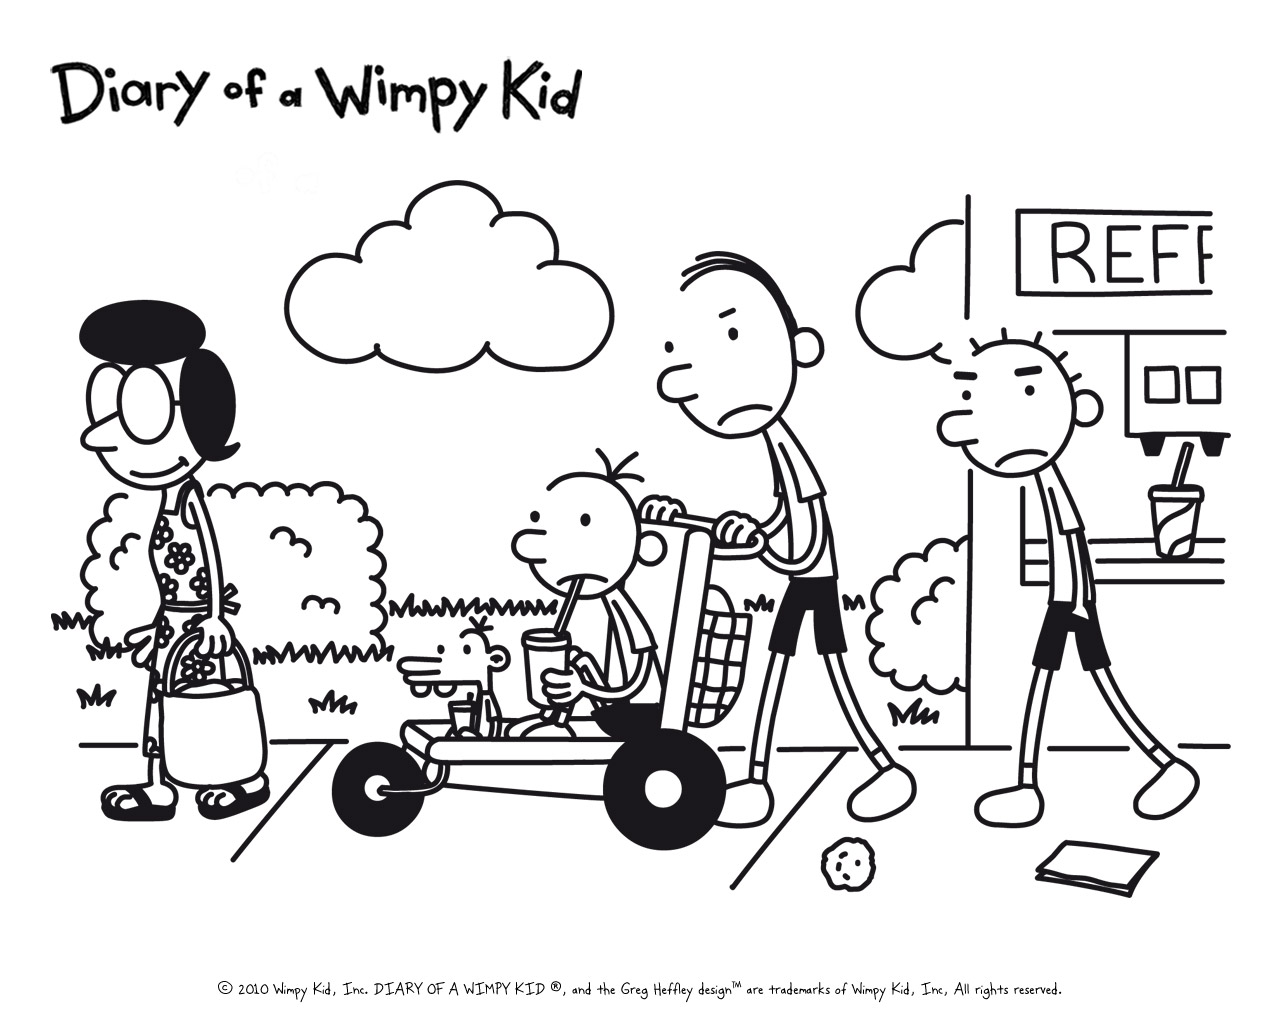 Heffley family diary of a wimpy kid wiki fandom for Wimpy kid coloring pages